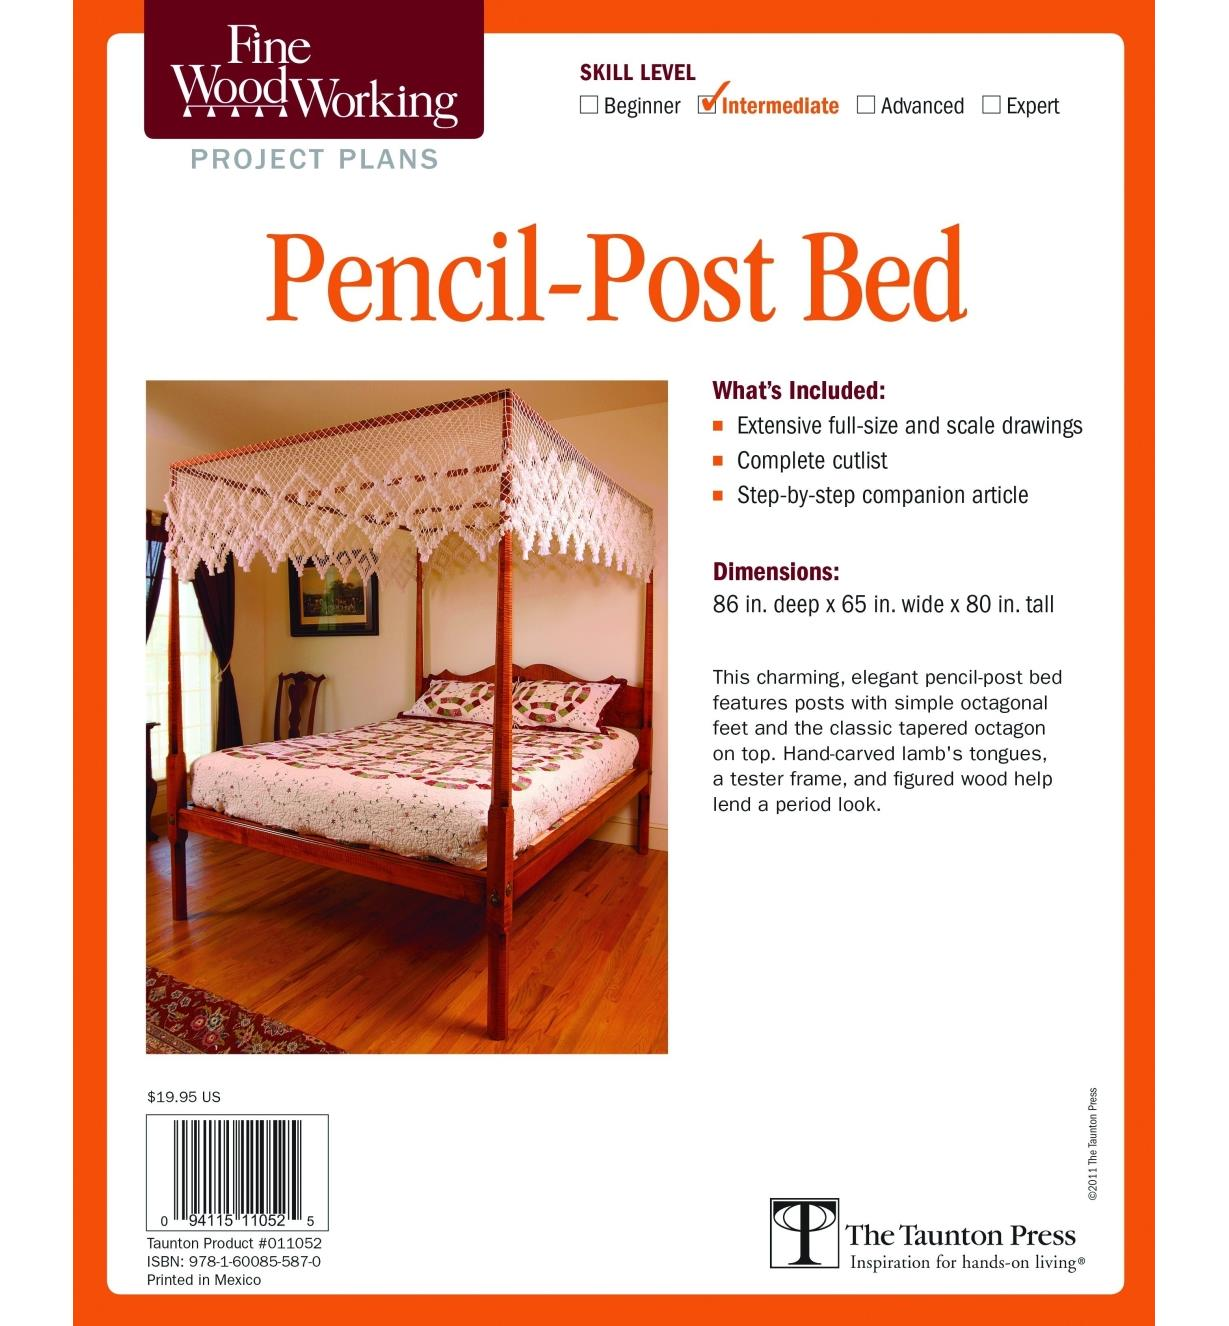 73L2526 - Pencil-Post Bed Plan